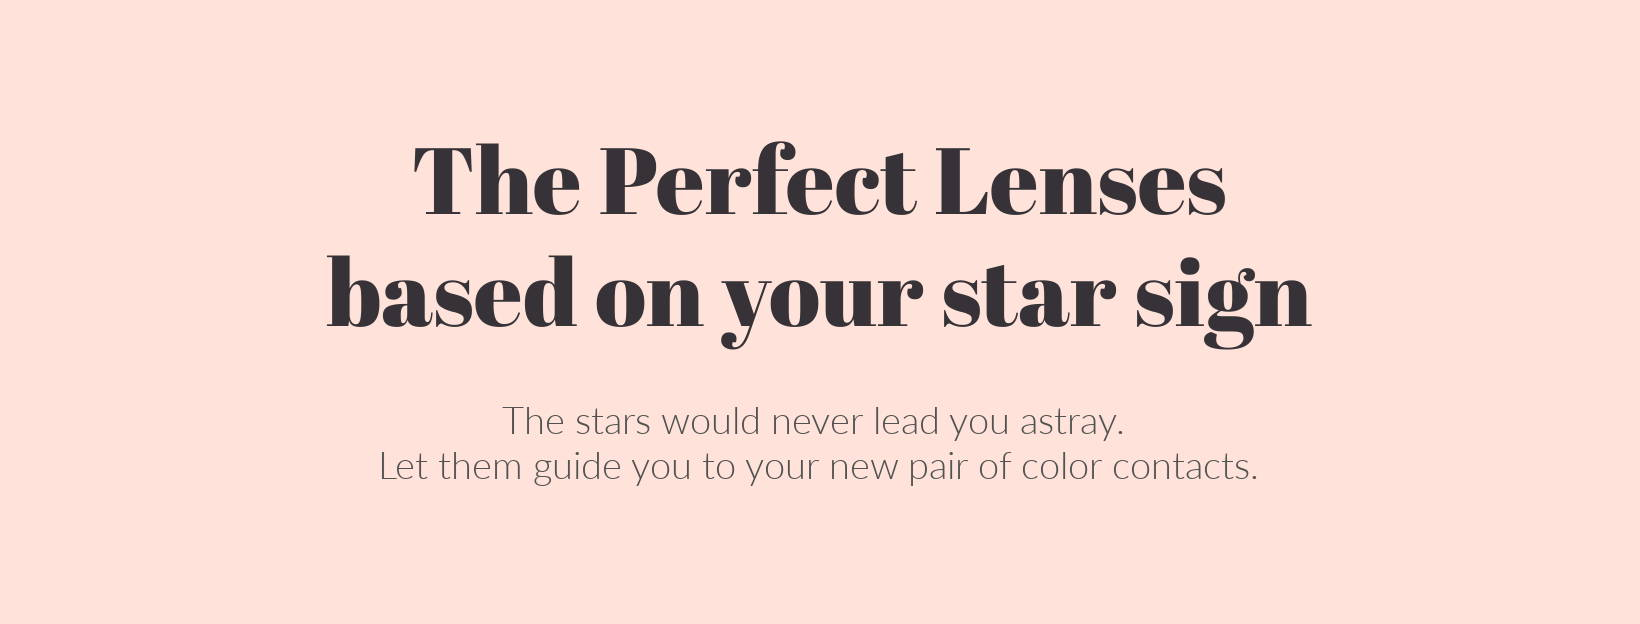 The Perfect Lenses based on your Star Sign